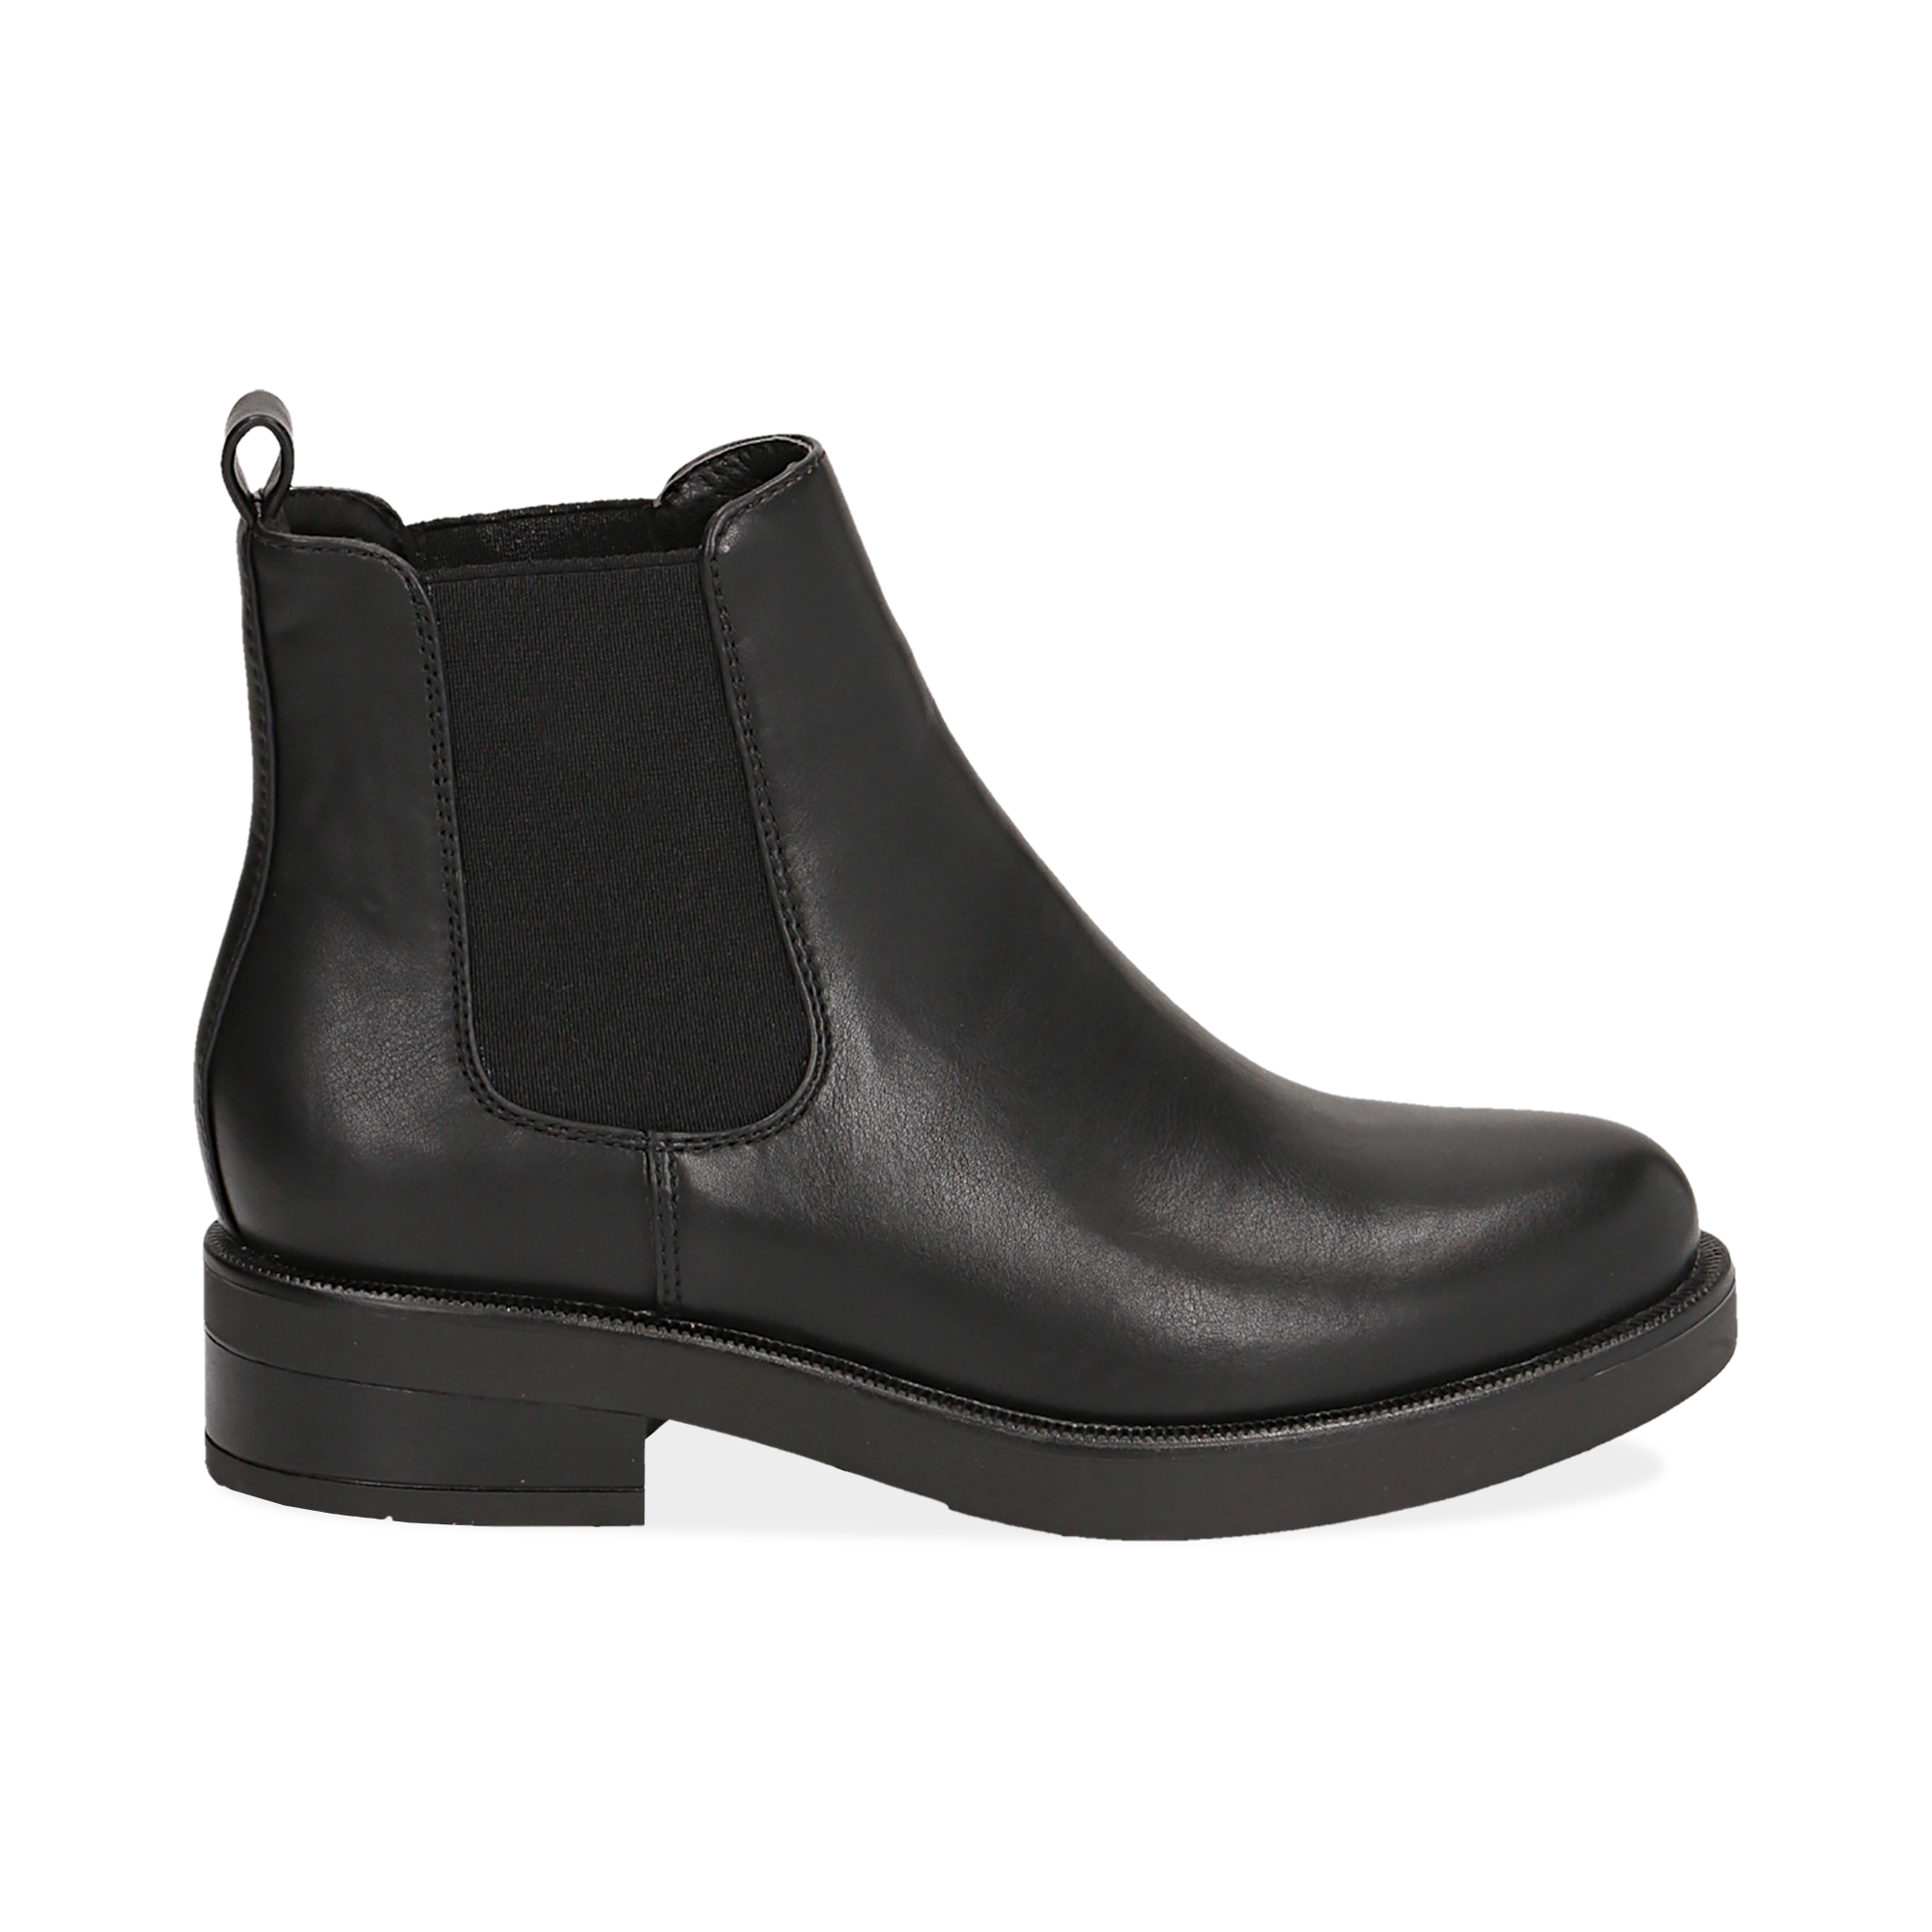 Chelsea boots neri in eco-pelle, tacco 4 cm